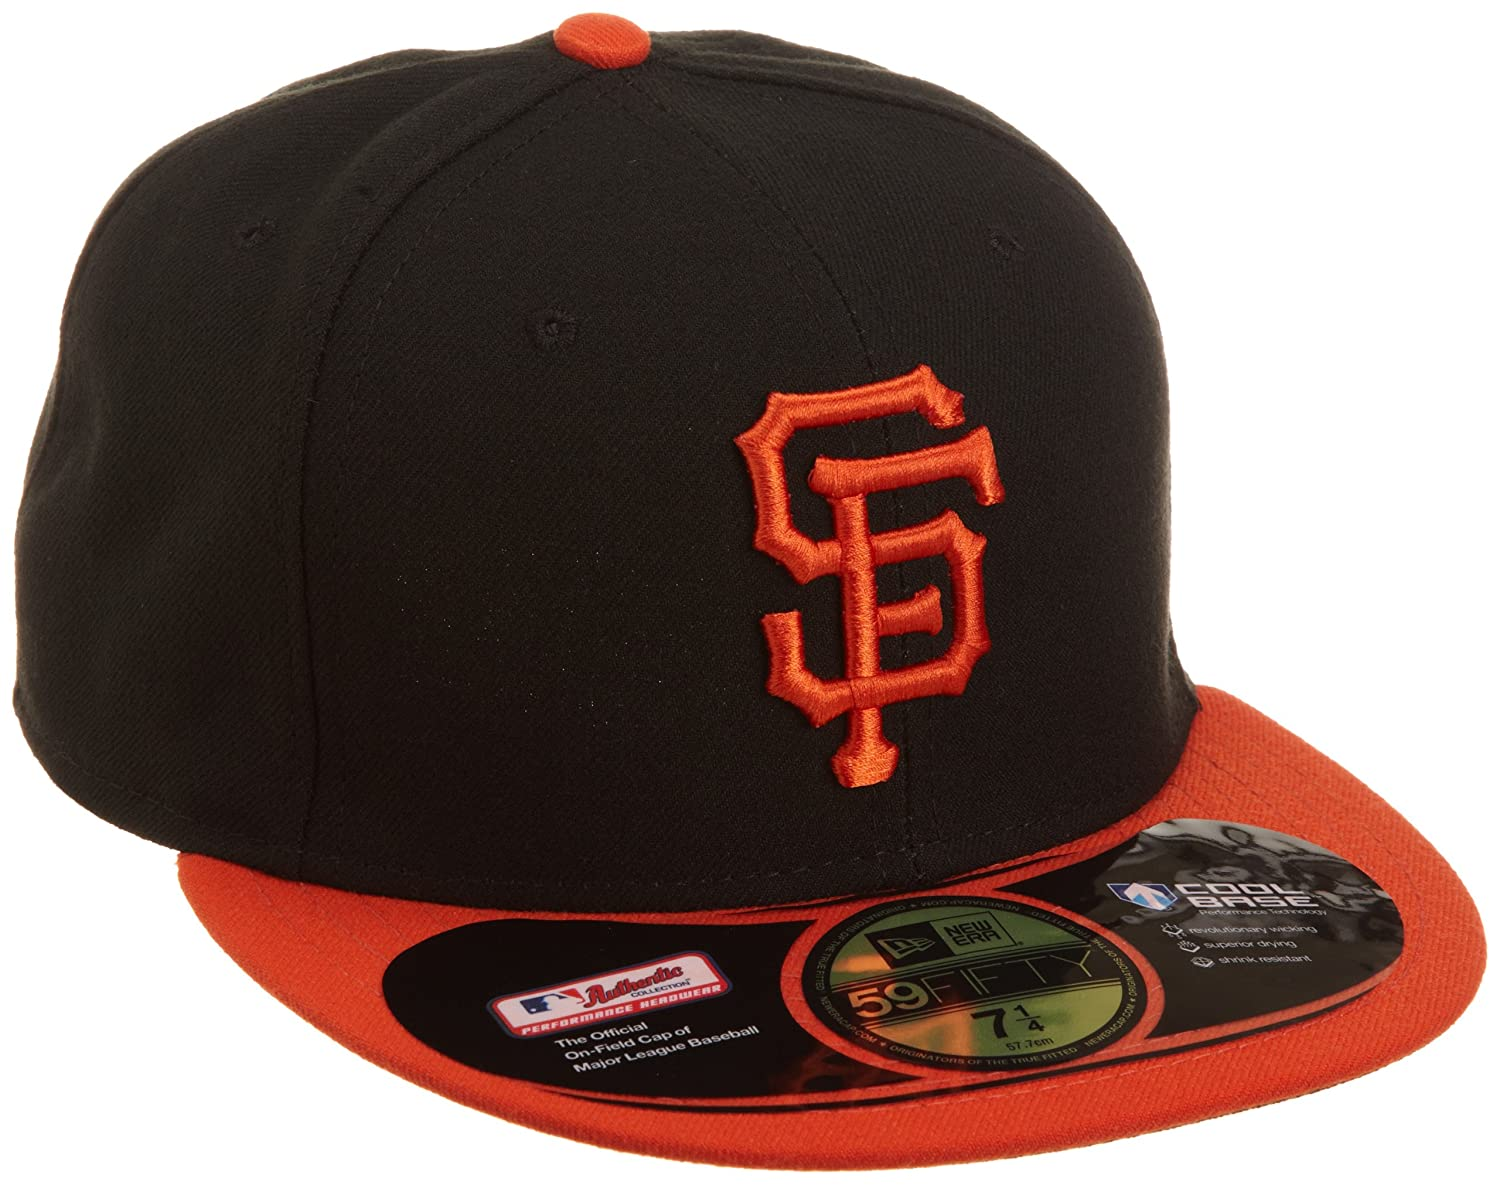 factory authentic a9d47 67147 New Era 70035114, MLB San Francisco Giants Authentic on Field Alternate 59Fifty  Fitted Cap, Black Orange, 7 3 8, Baseball Caps - Amazon Canada